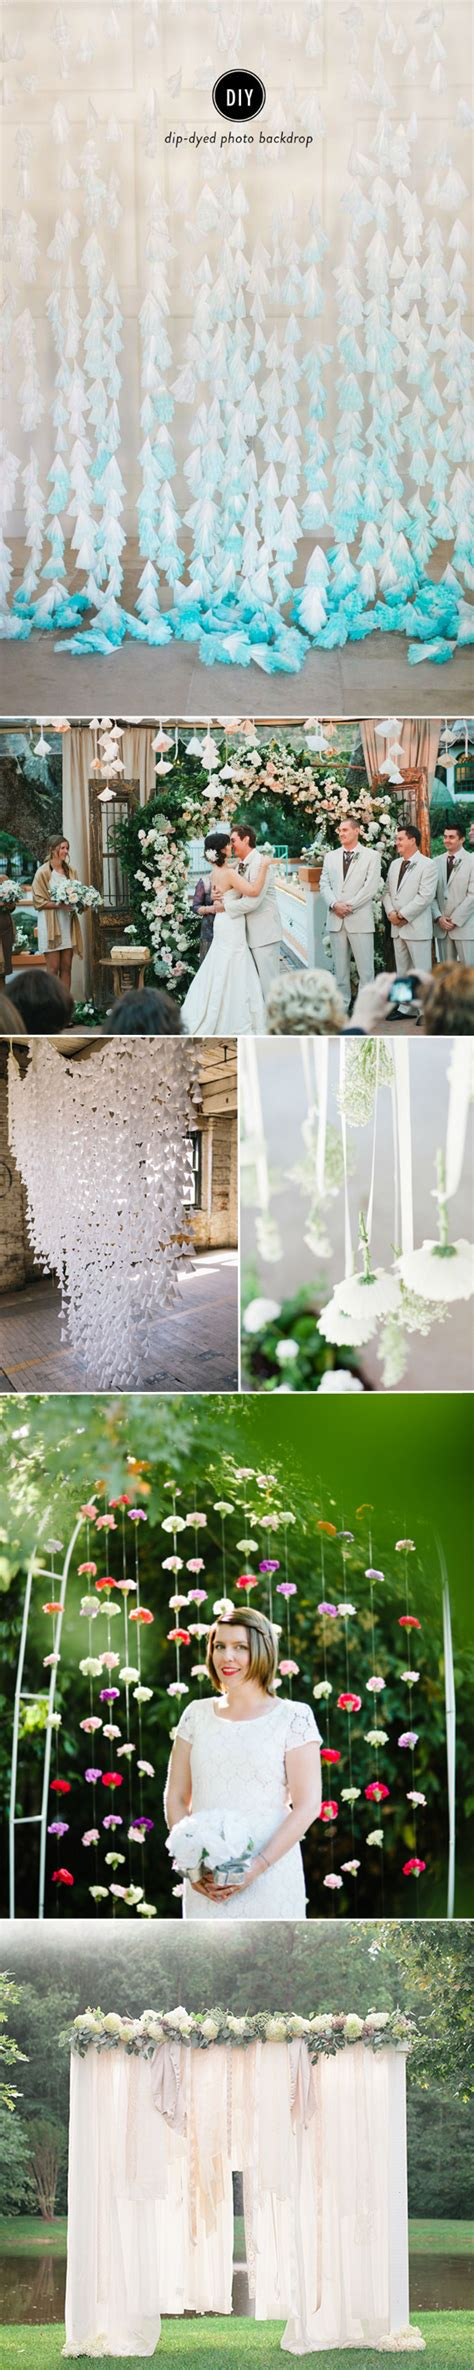 7 charming diy wedding decor ideas we love tulle